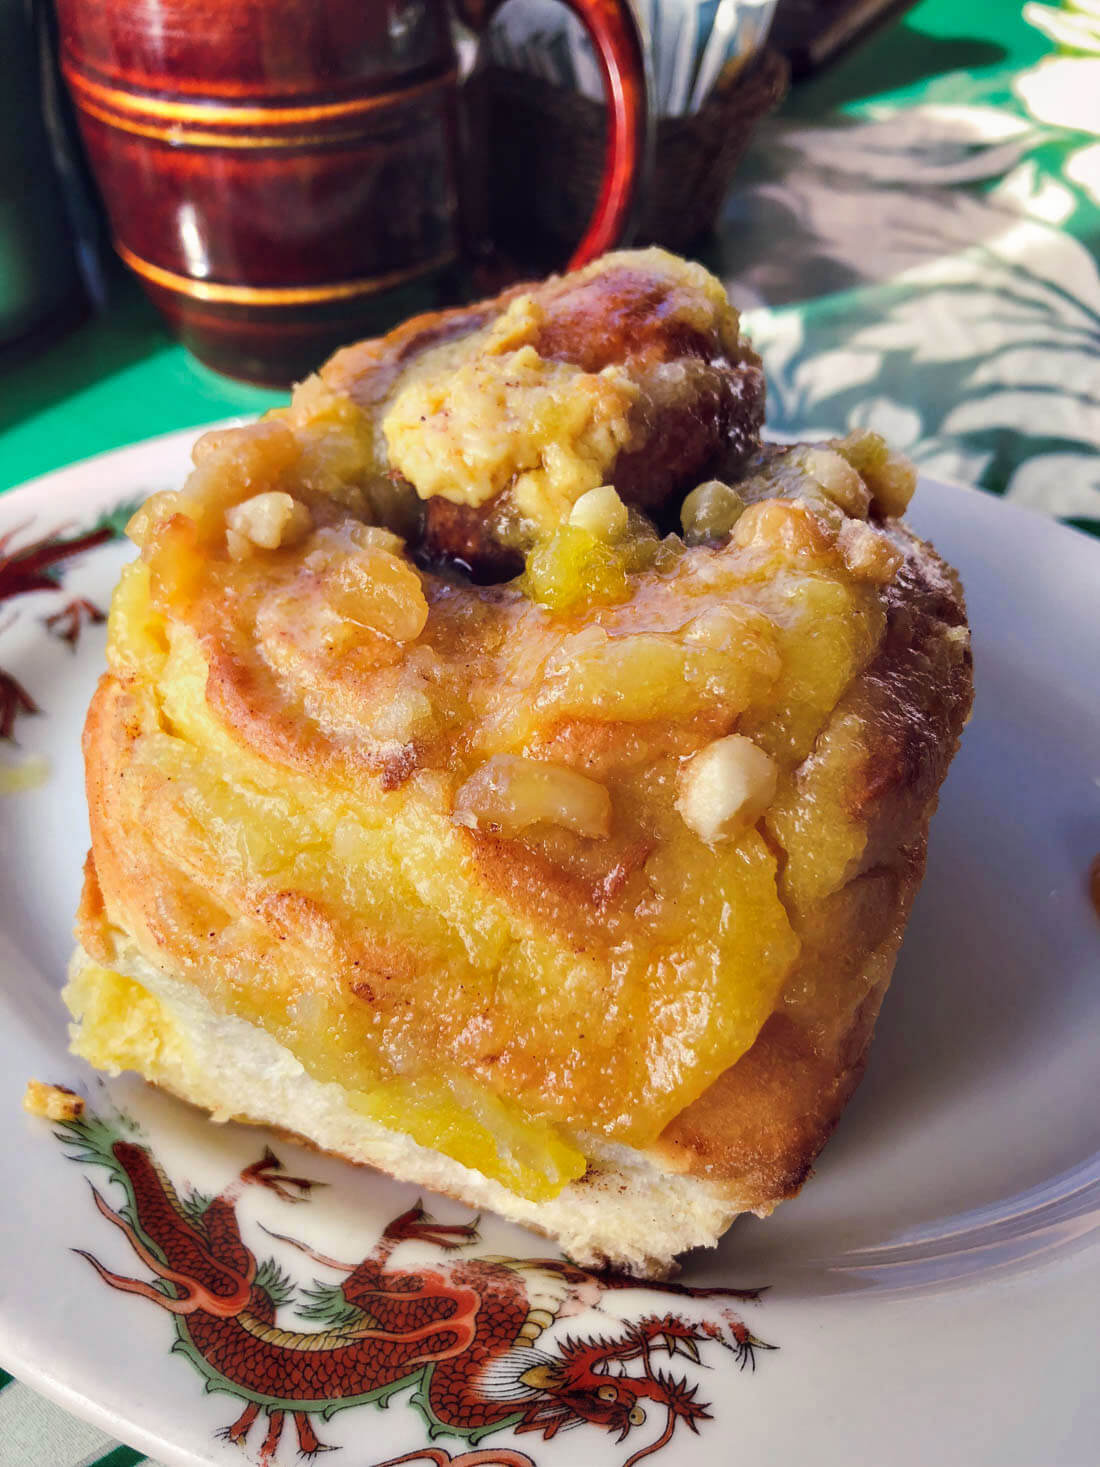 Macadamia Nut Cinnamon Roll from Hanalei Cafe